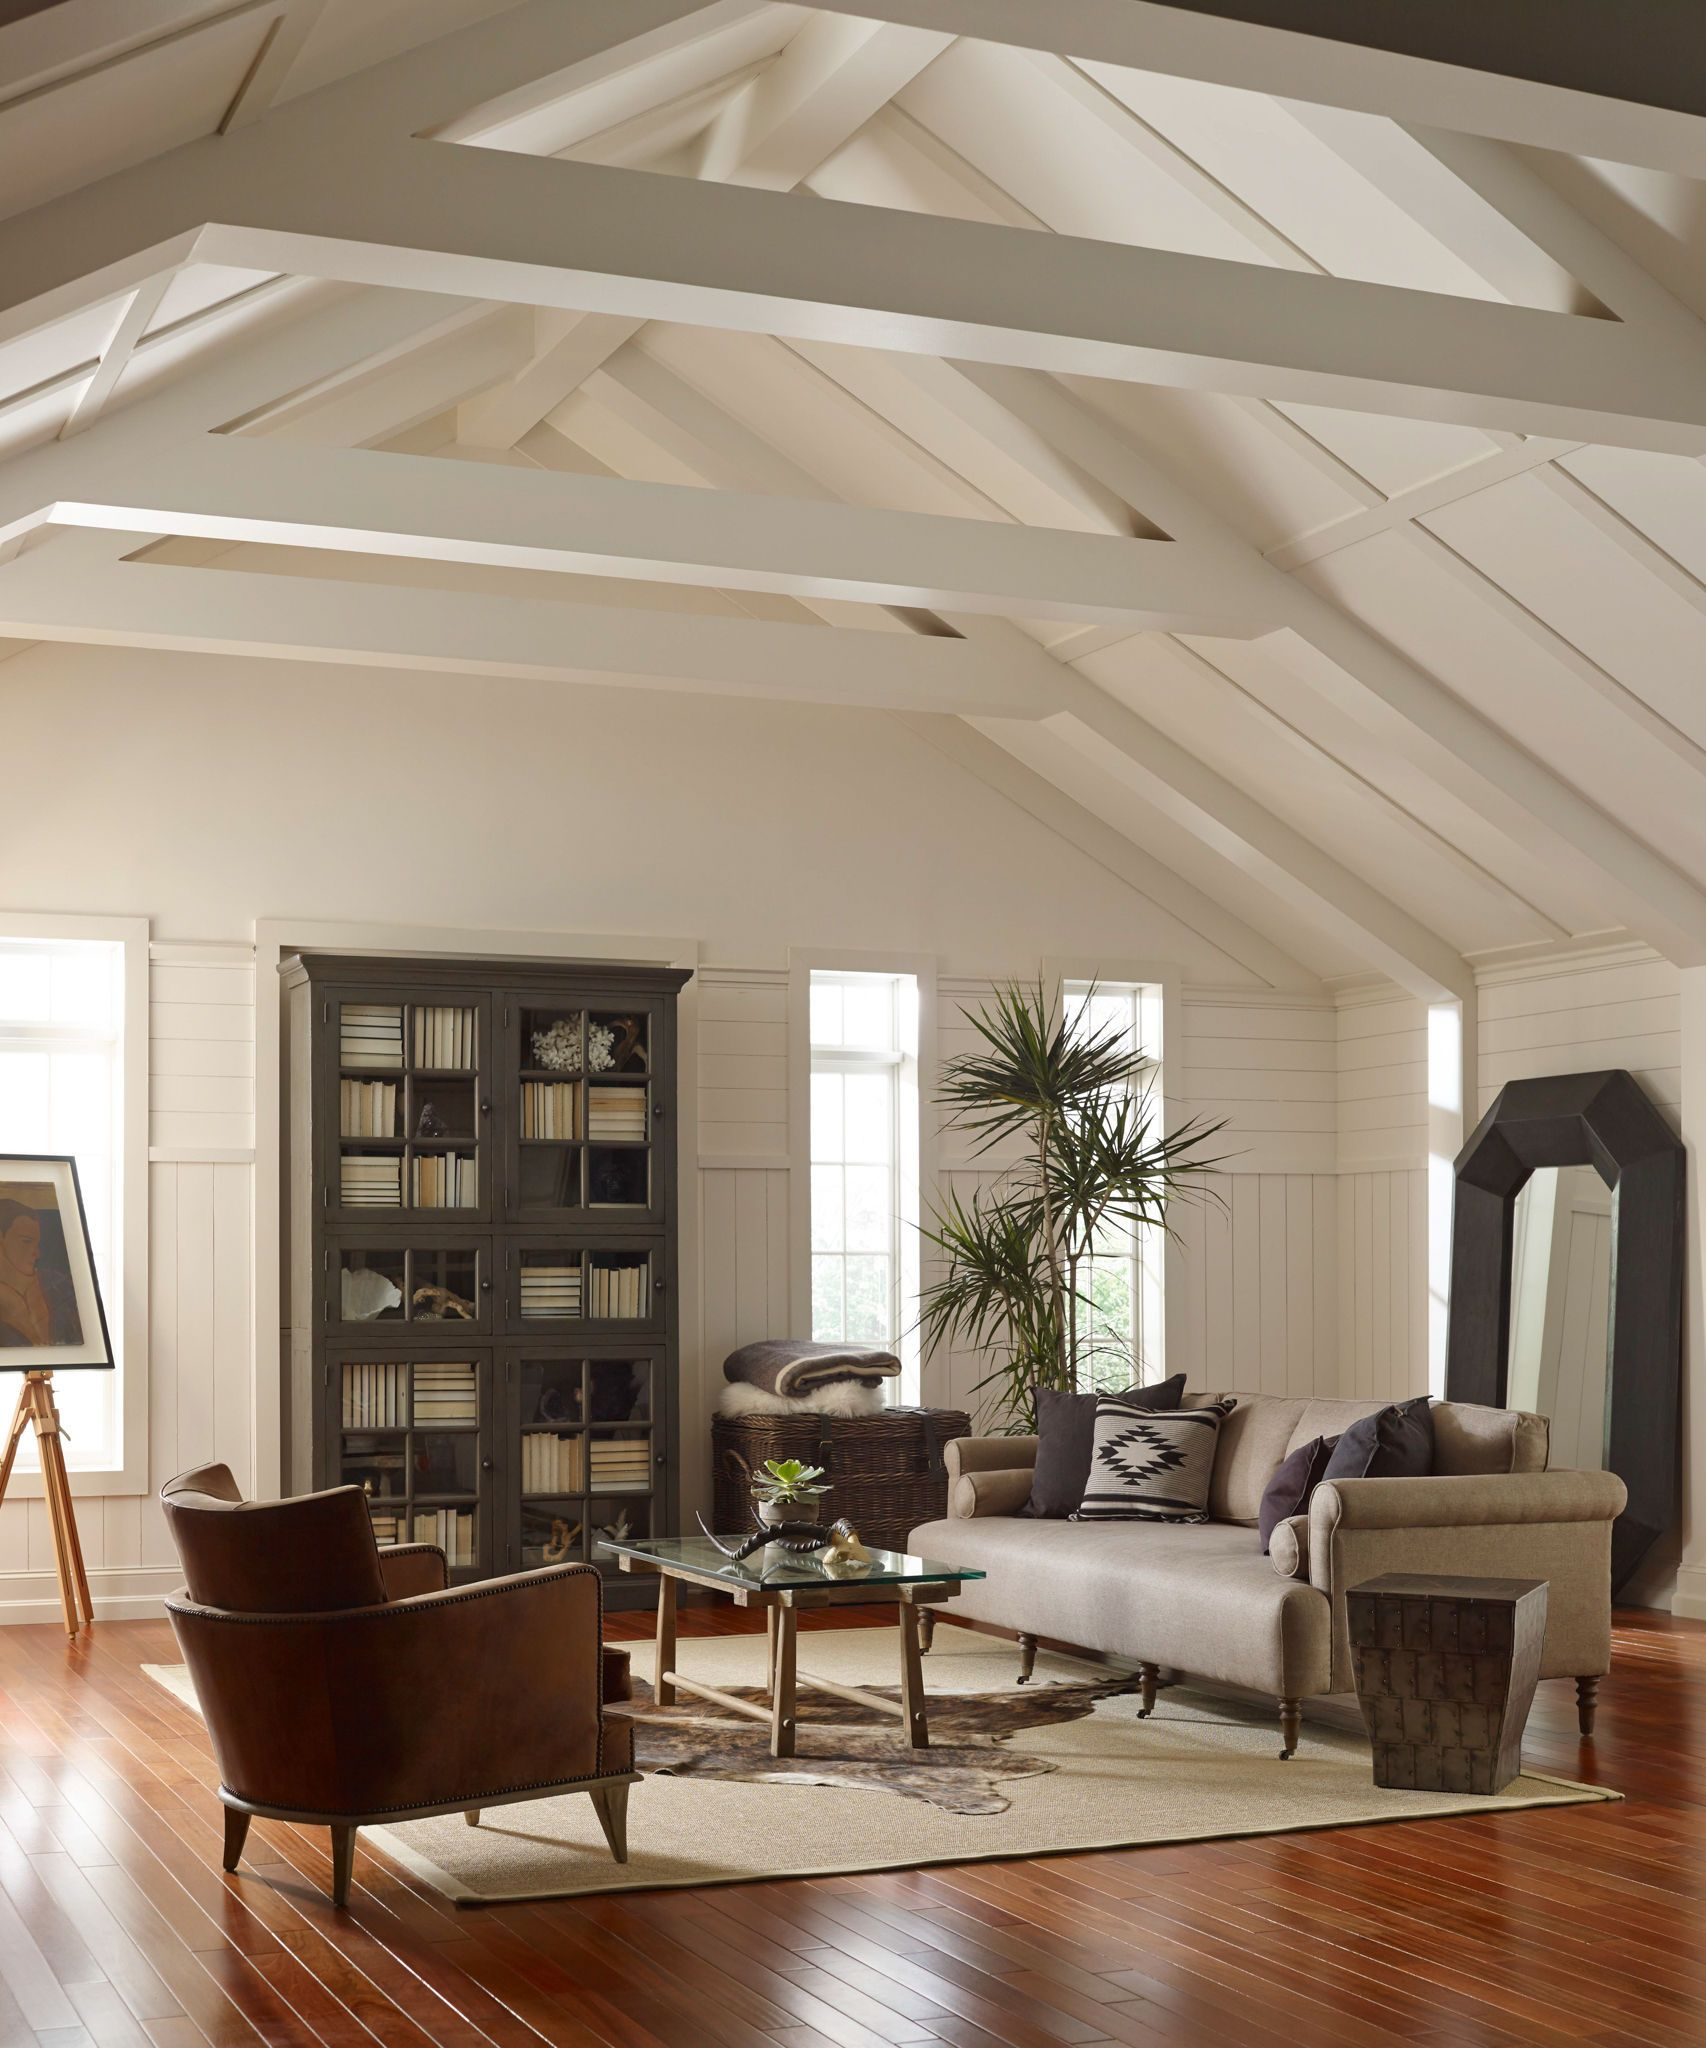 Explore Sophisticated Shapes, Intriguing Finishes, And Rustic Allure In This